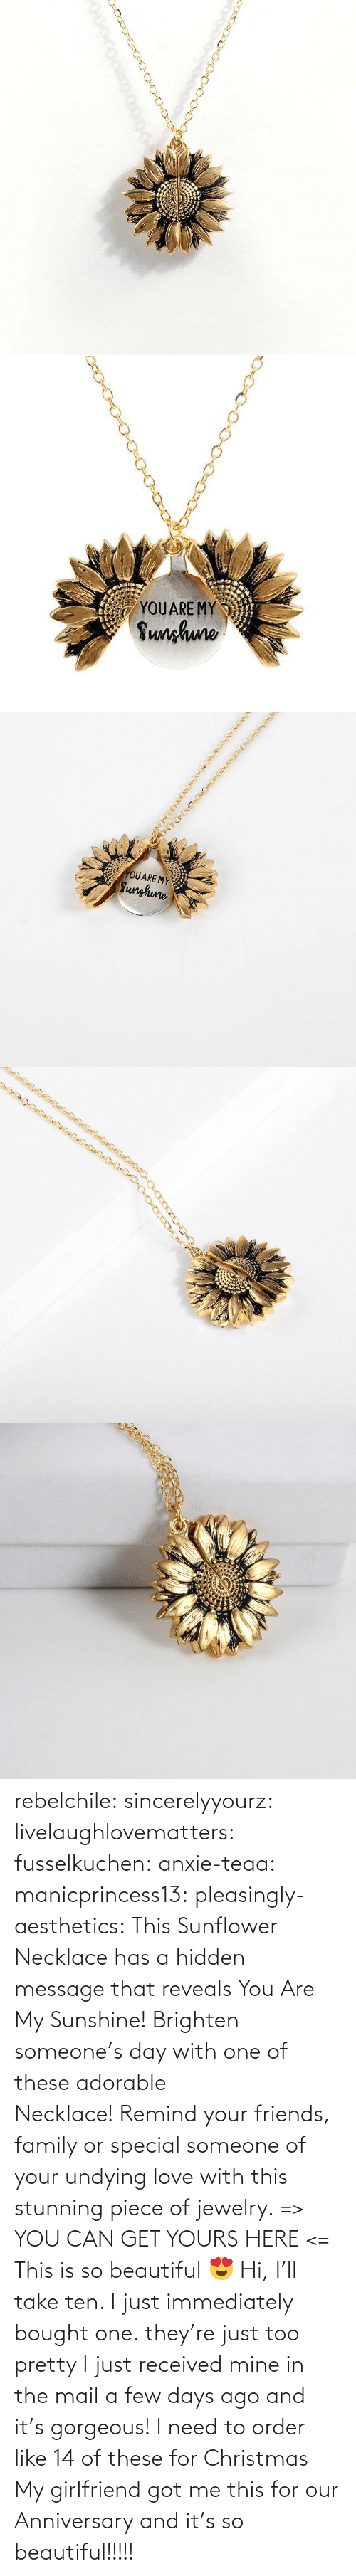 Can Get: rebelchile:  sincerelyyourz:  livelaughlovematters:  fusselkuchen:  anxie-teaa:   manicprincess13:   pleasingly-aesthetics:  This Sunflower Necklace has a hidden message that reveals You Are My Sunshine! Brighten someone's day with one of these adorable Necklace! Remind your friends, family or special someone of your undying love with this stunning piece of jewelry. => YOU CAN GET YOURS HERE <=   This is so beautiful 😍    Hi, I'll take ten.    I just immediately bought one. they're just too pretty   I just received mine in the mail a few days ago and it's gorgeous!   I need to order like 14 of these for Christmas    My girlfriend got me this for our Anniversary and it's so beautiful!!!!!